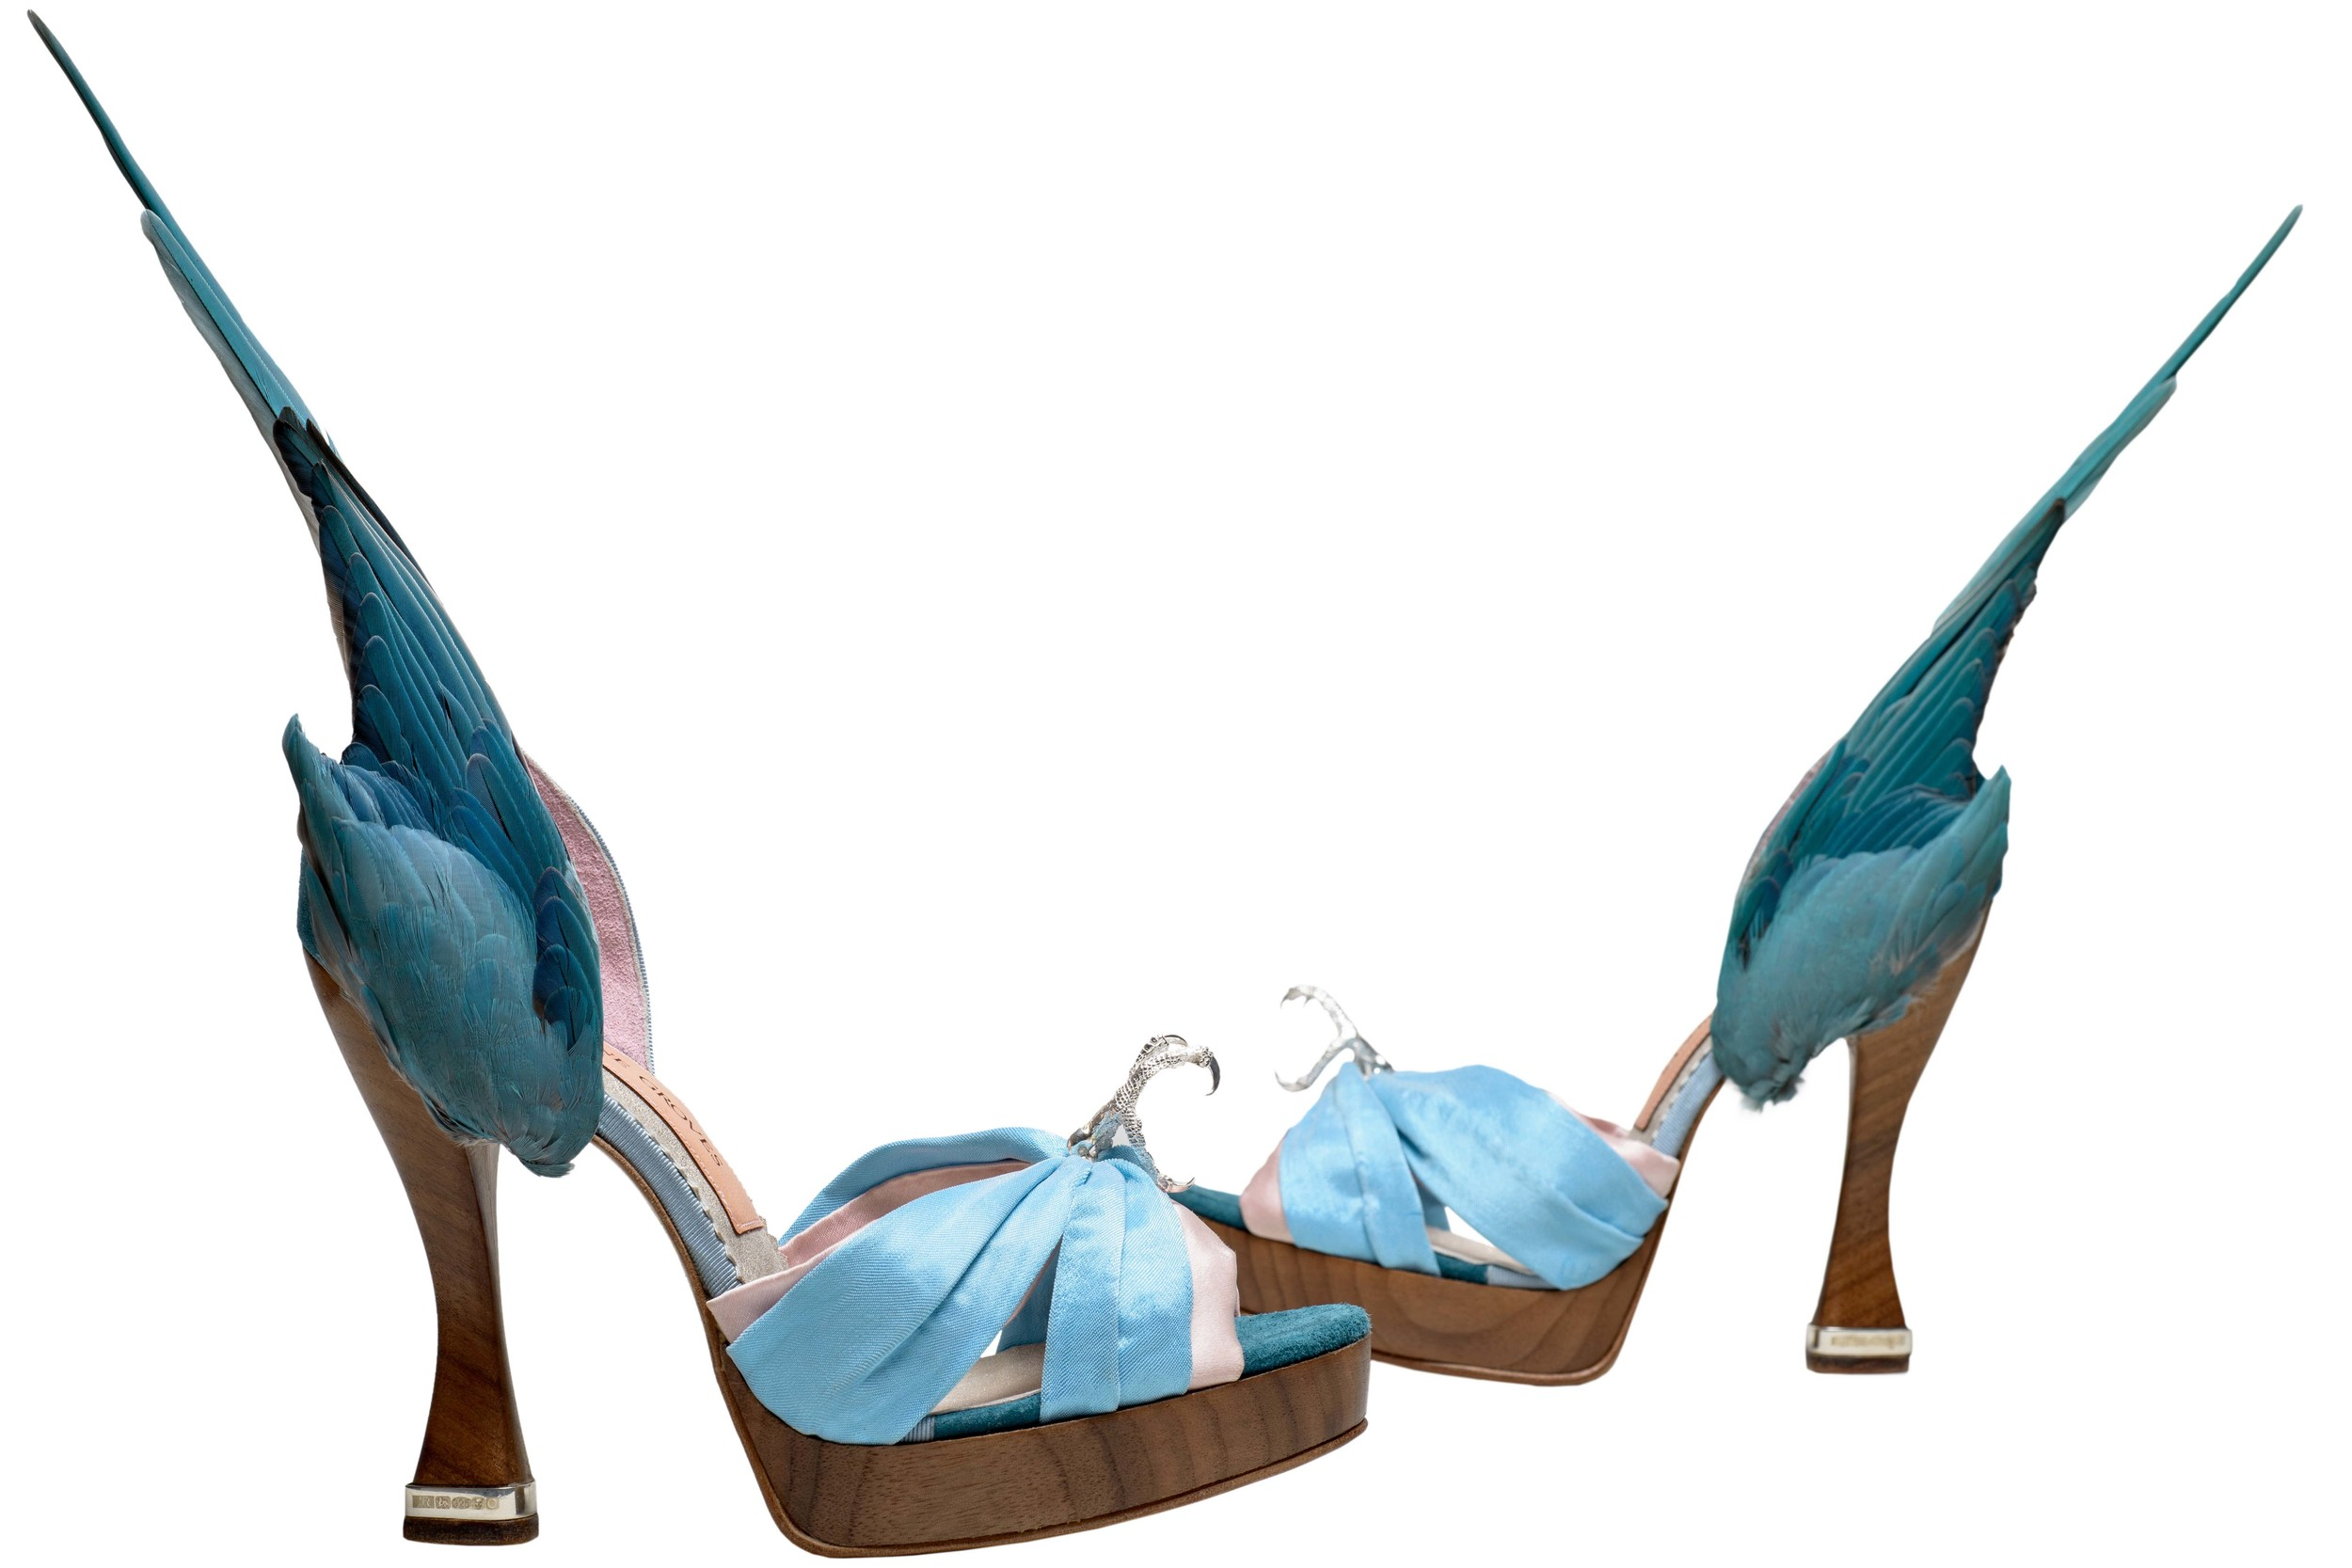 'Parakeet' shoes by Caroline Groves, England 2014.Photo by Dan Lowe